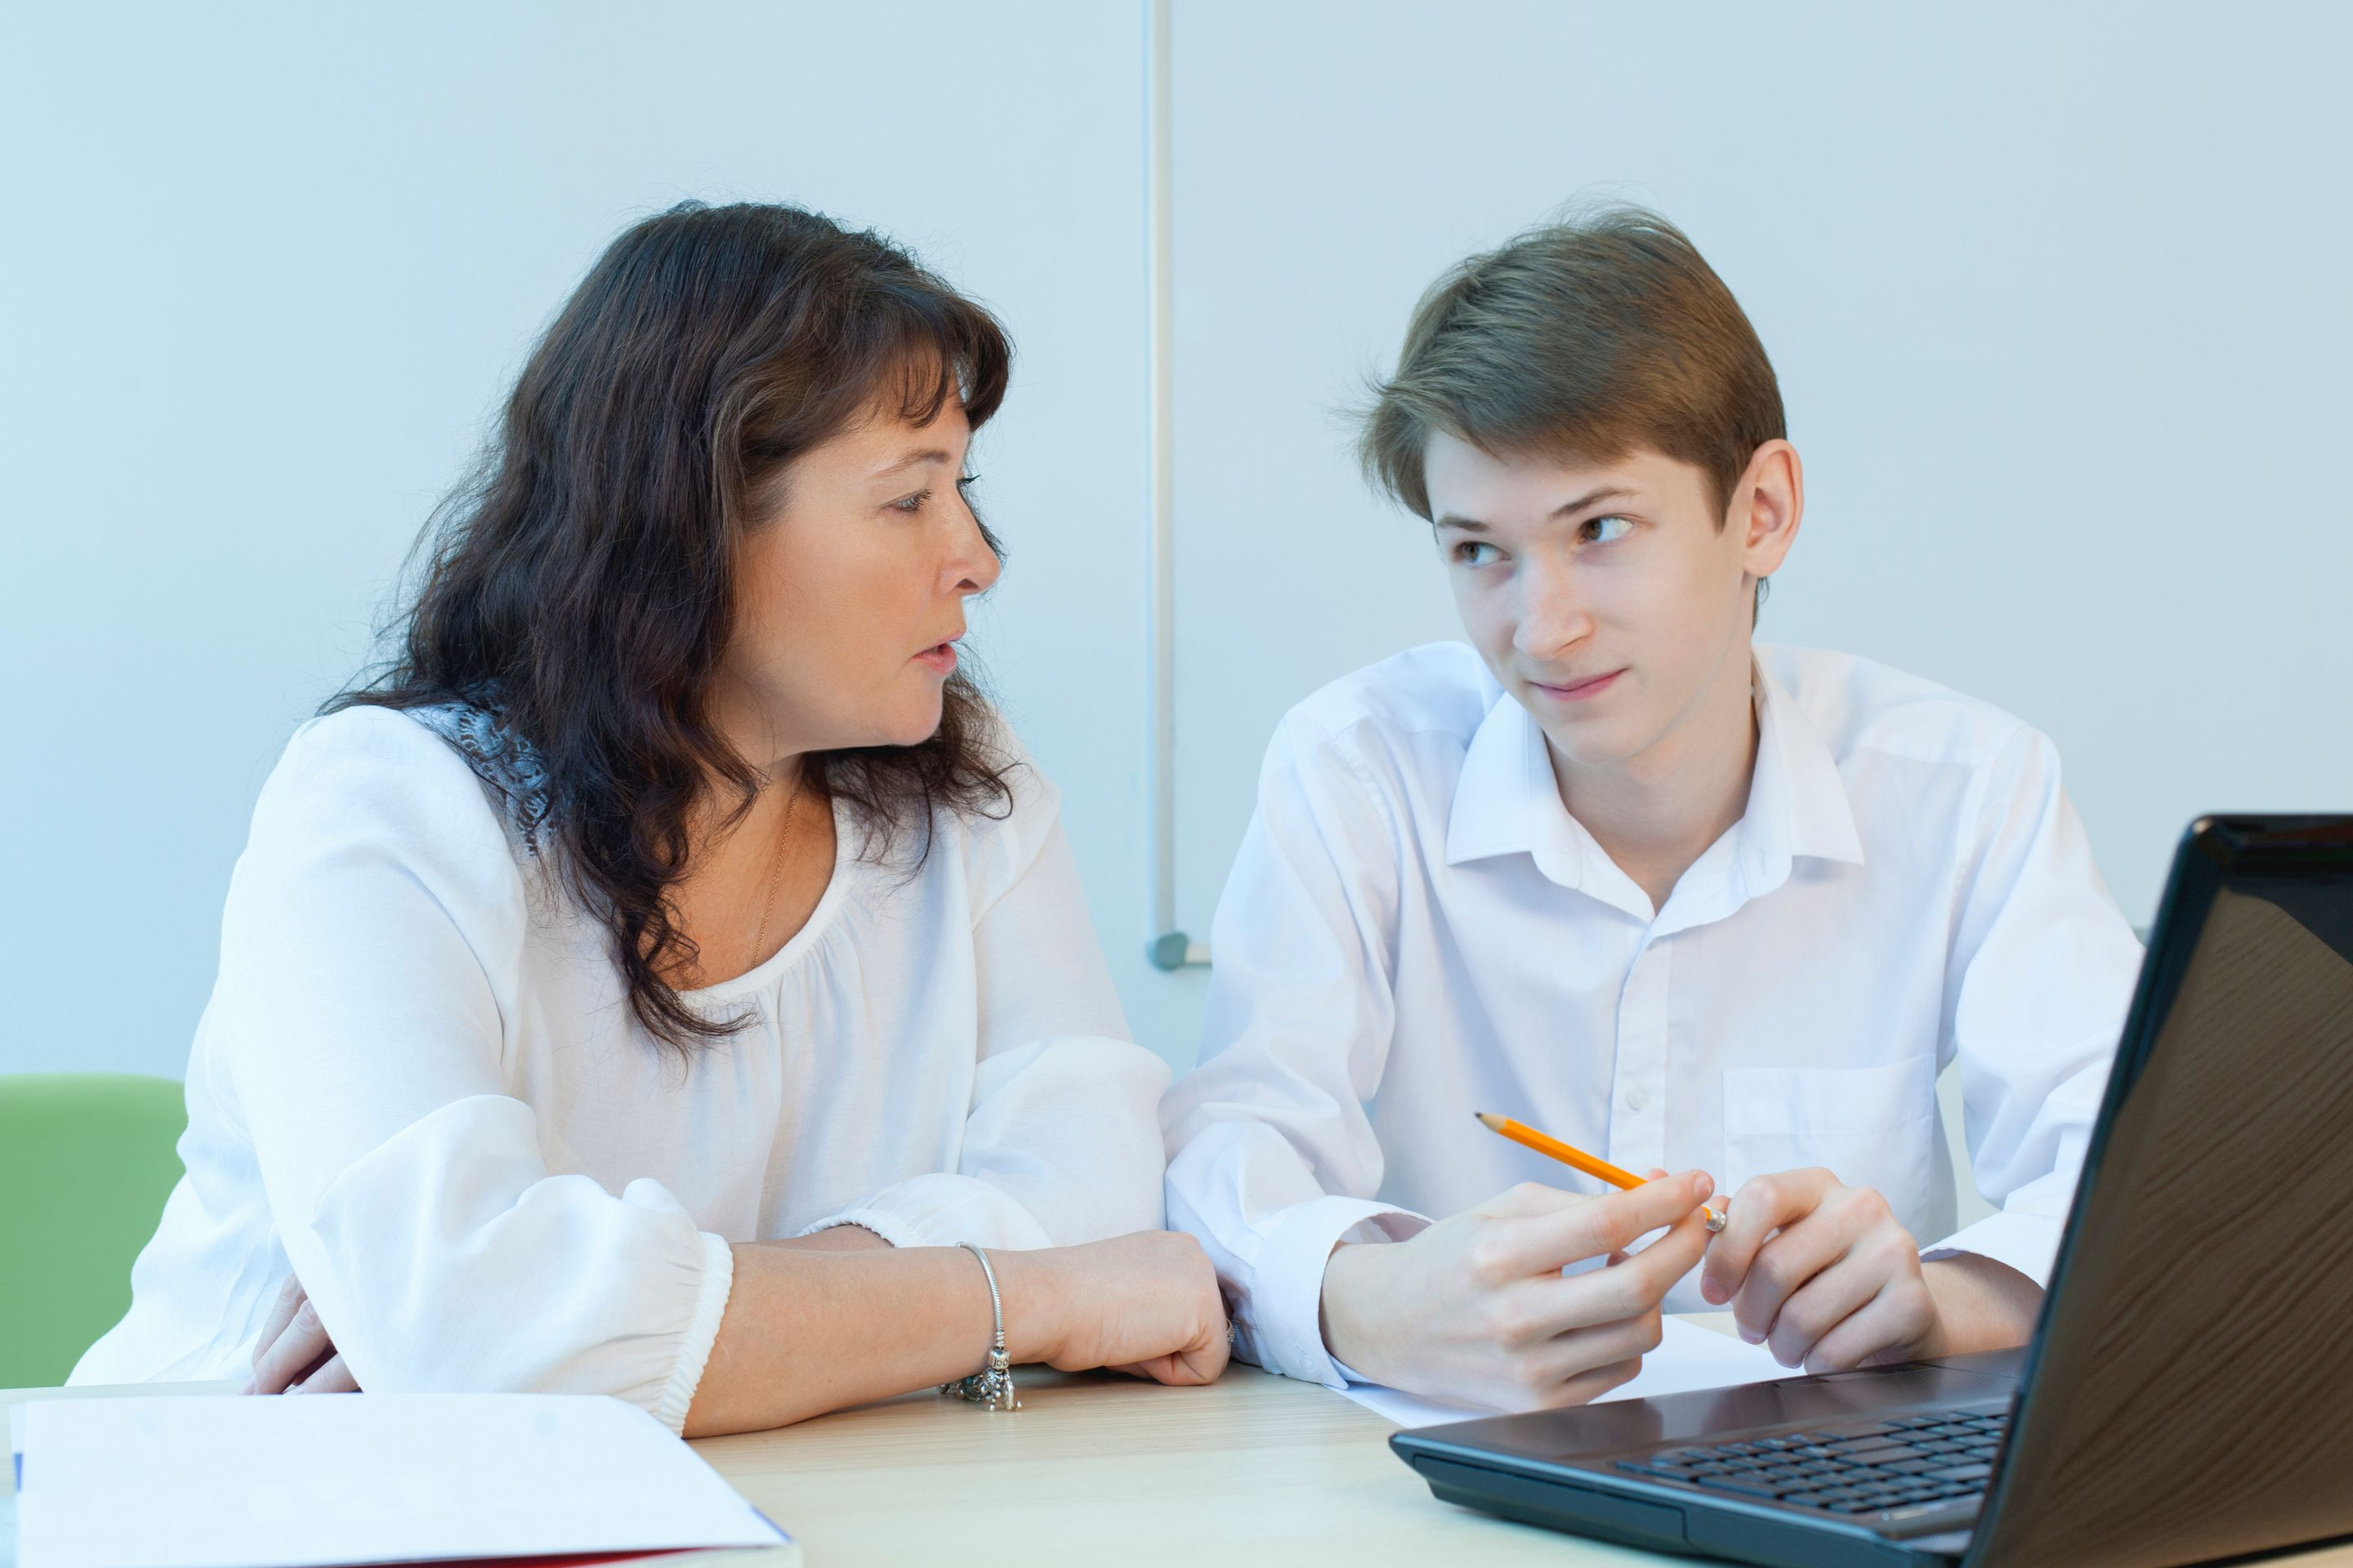 A teacher listens to and comforts a student